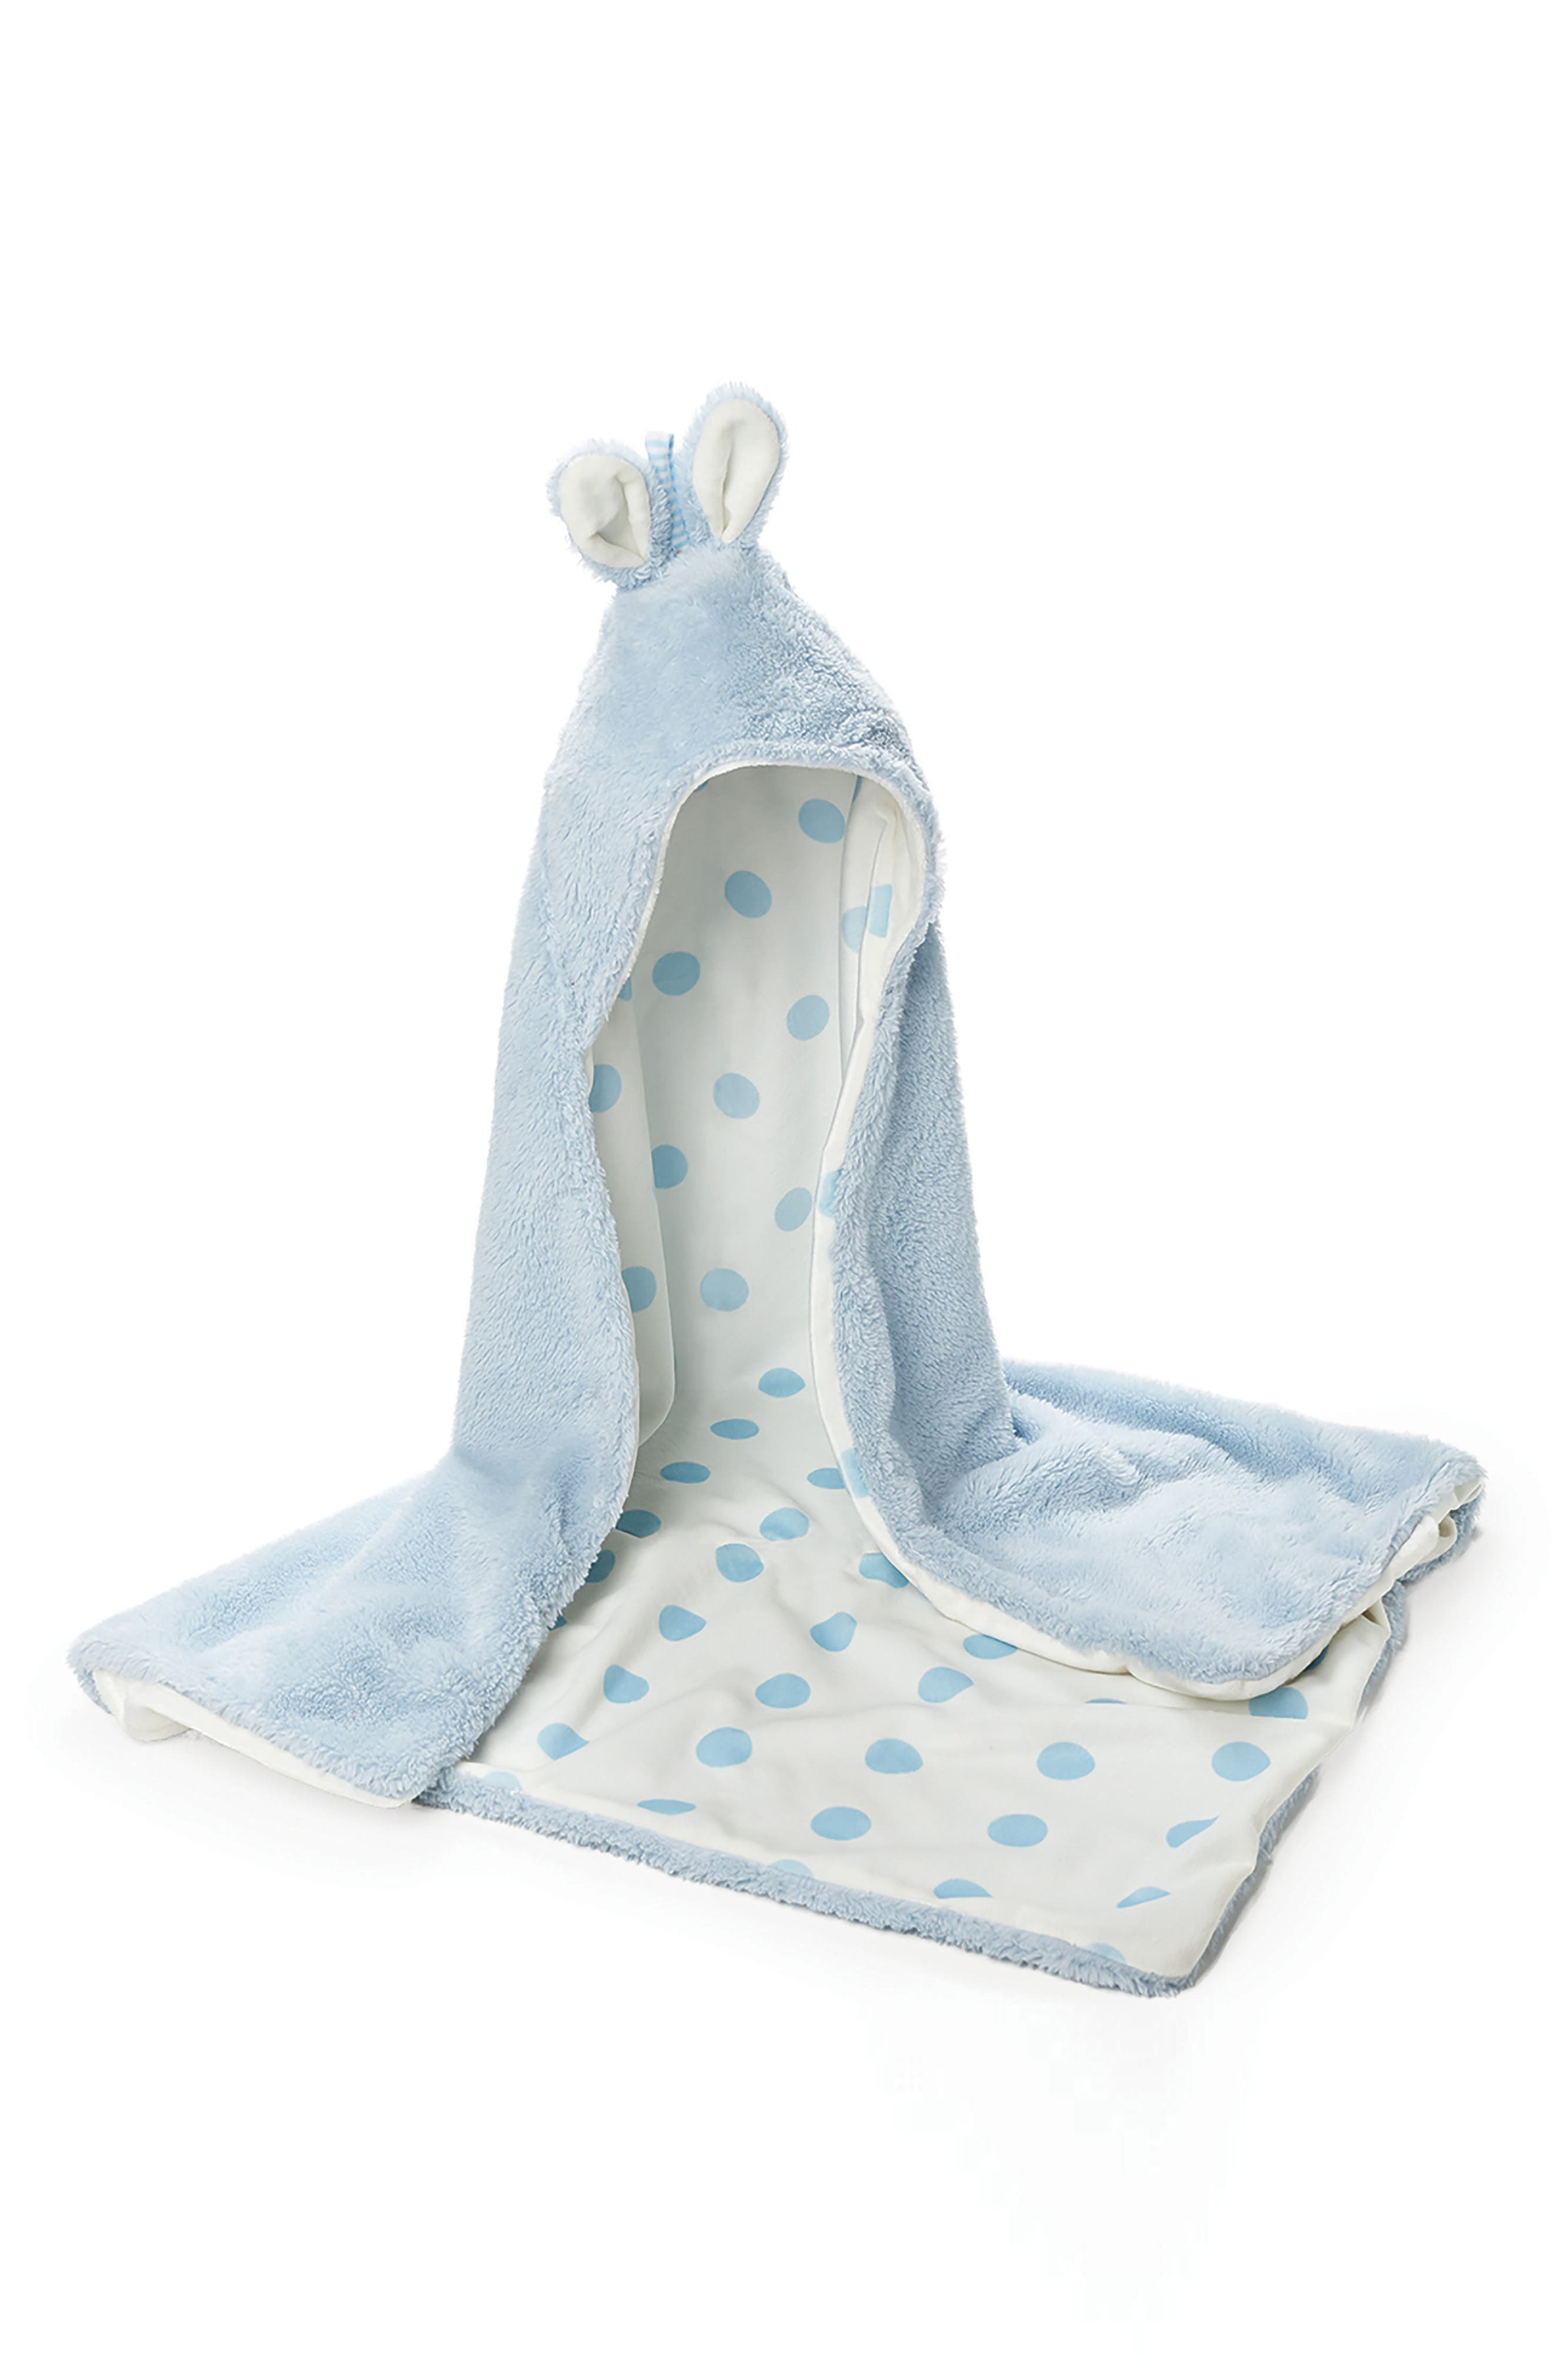 Bunny Hooded Blanket,                             Main thumbnail 2, color,